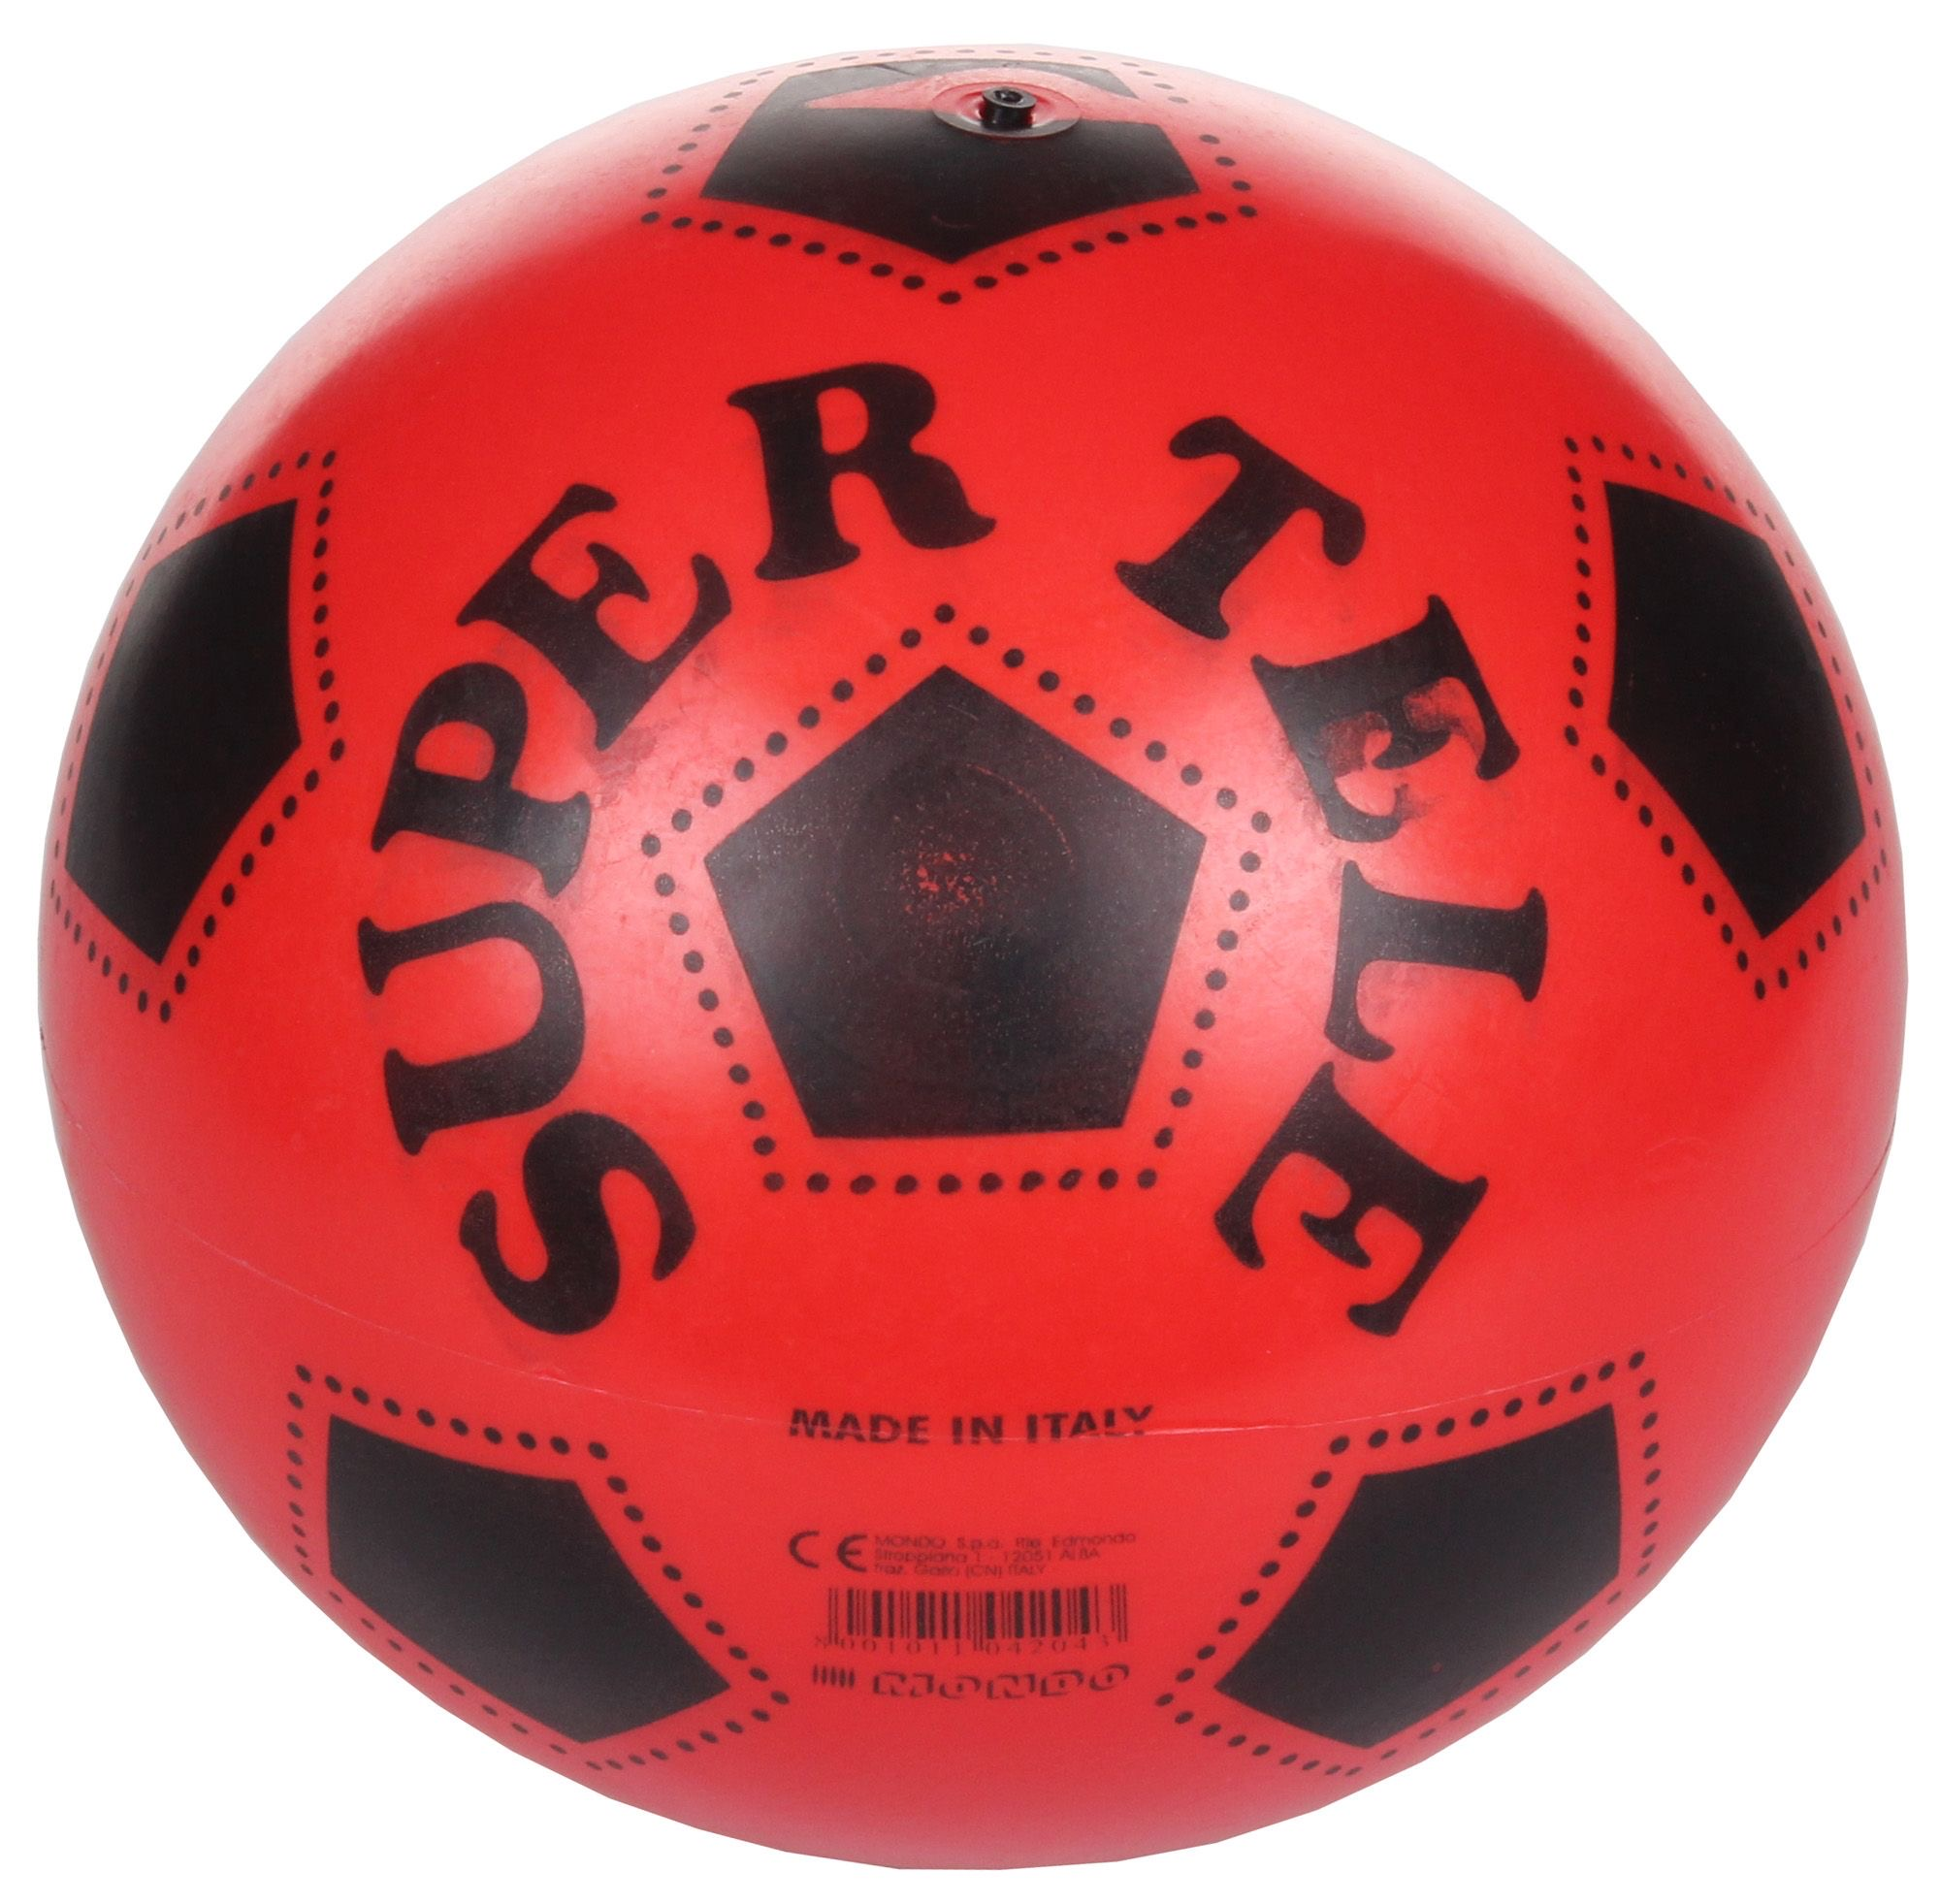 How do you make this ball (felele) stronger?